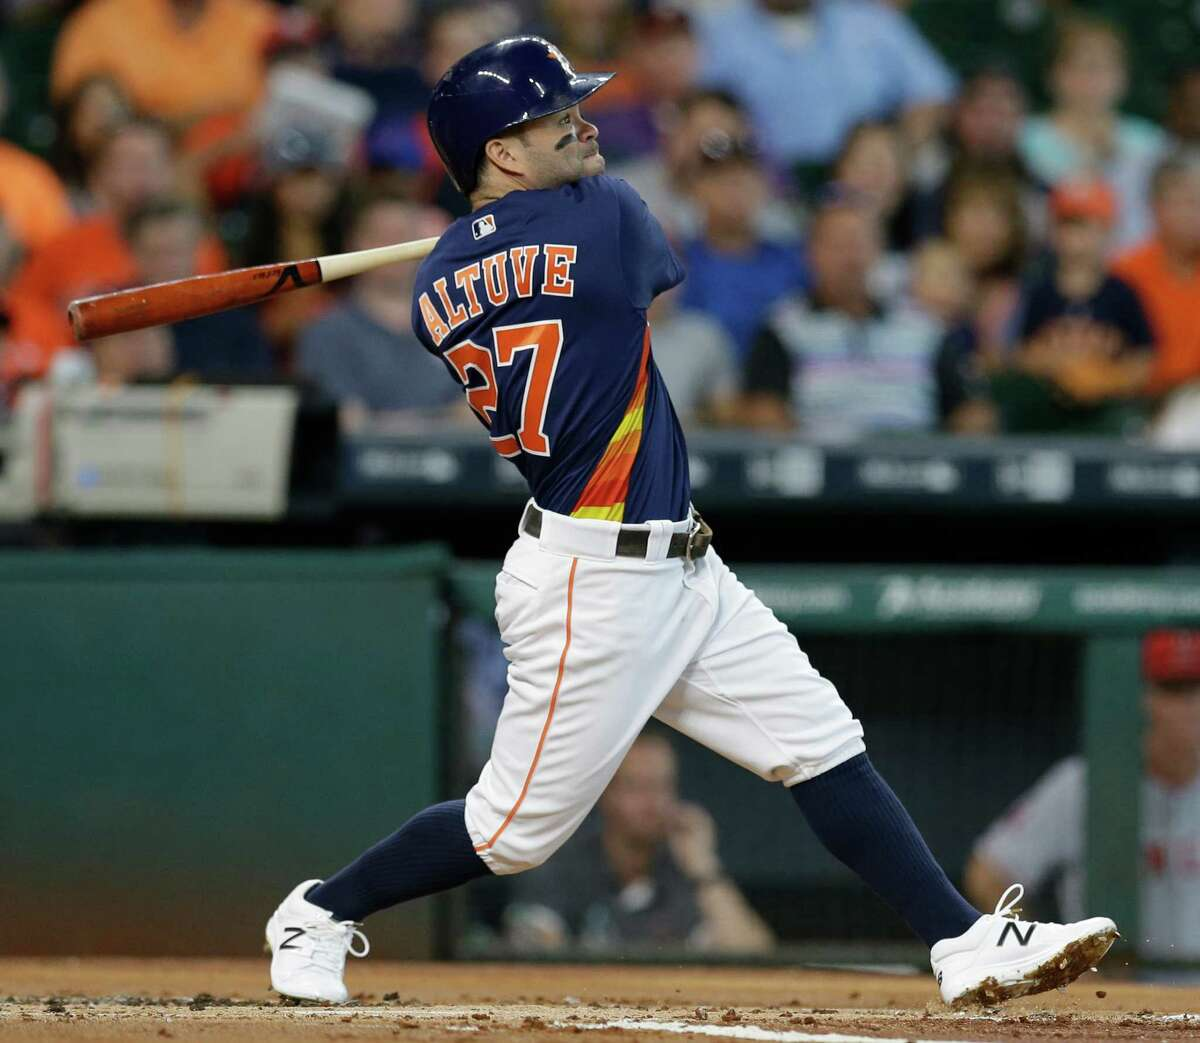 Houston Astros Jose Altuve hits a three home run against the Los Angeles Angels during the first inning at Minute Maid Park Sunday, July 24, 2016, in Houston. George Springer and Marwin Gonzalez scored on the home run.